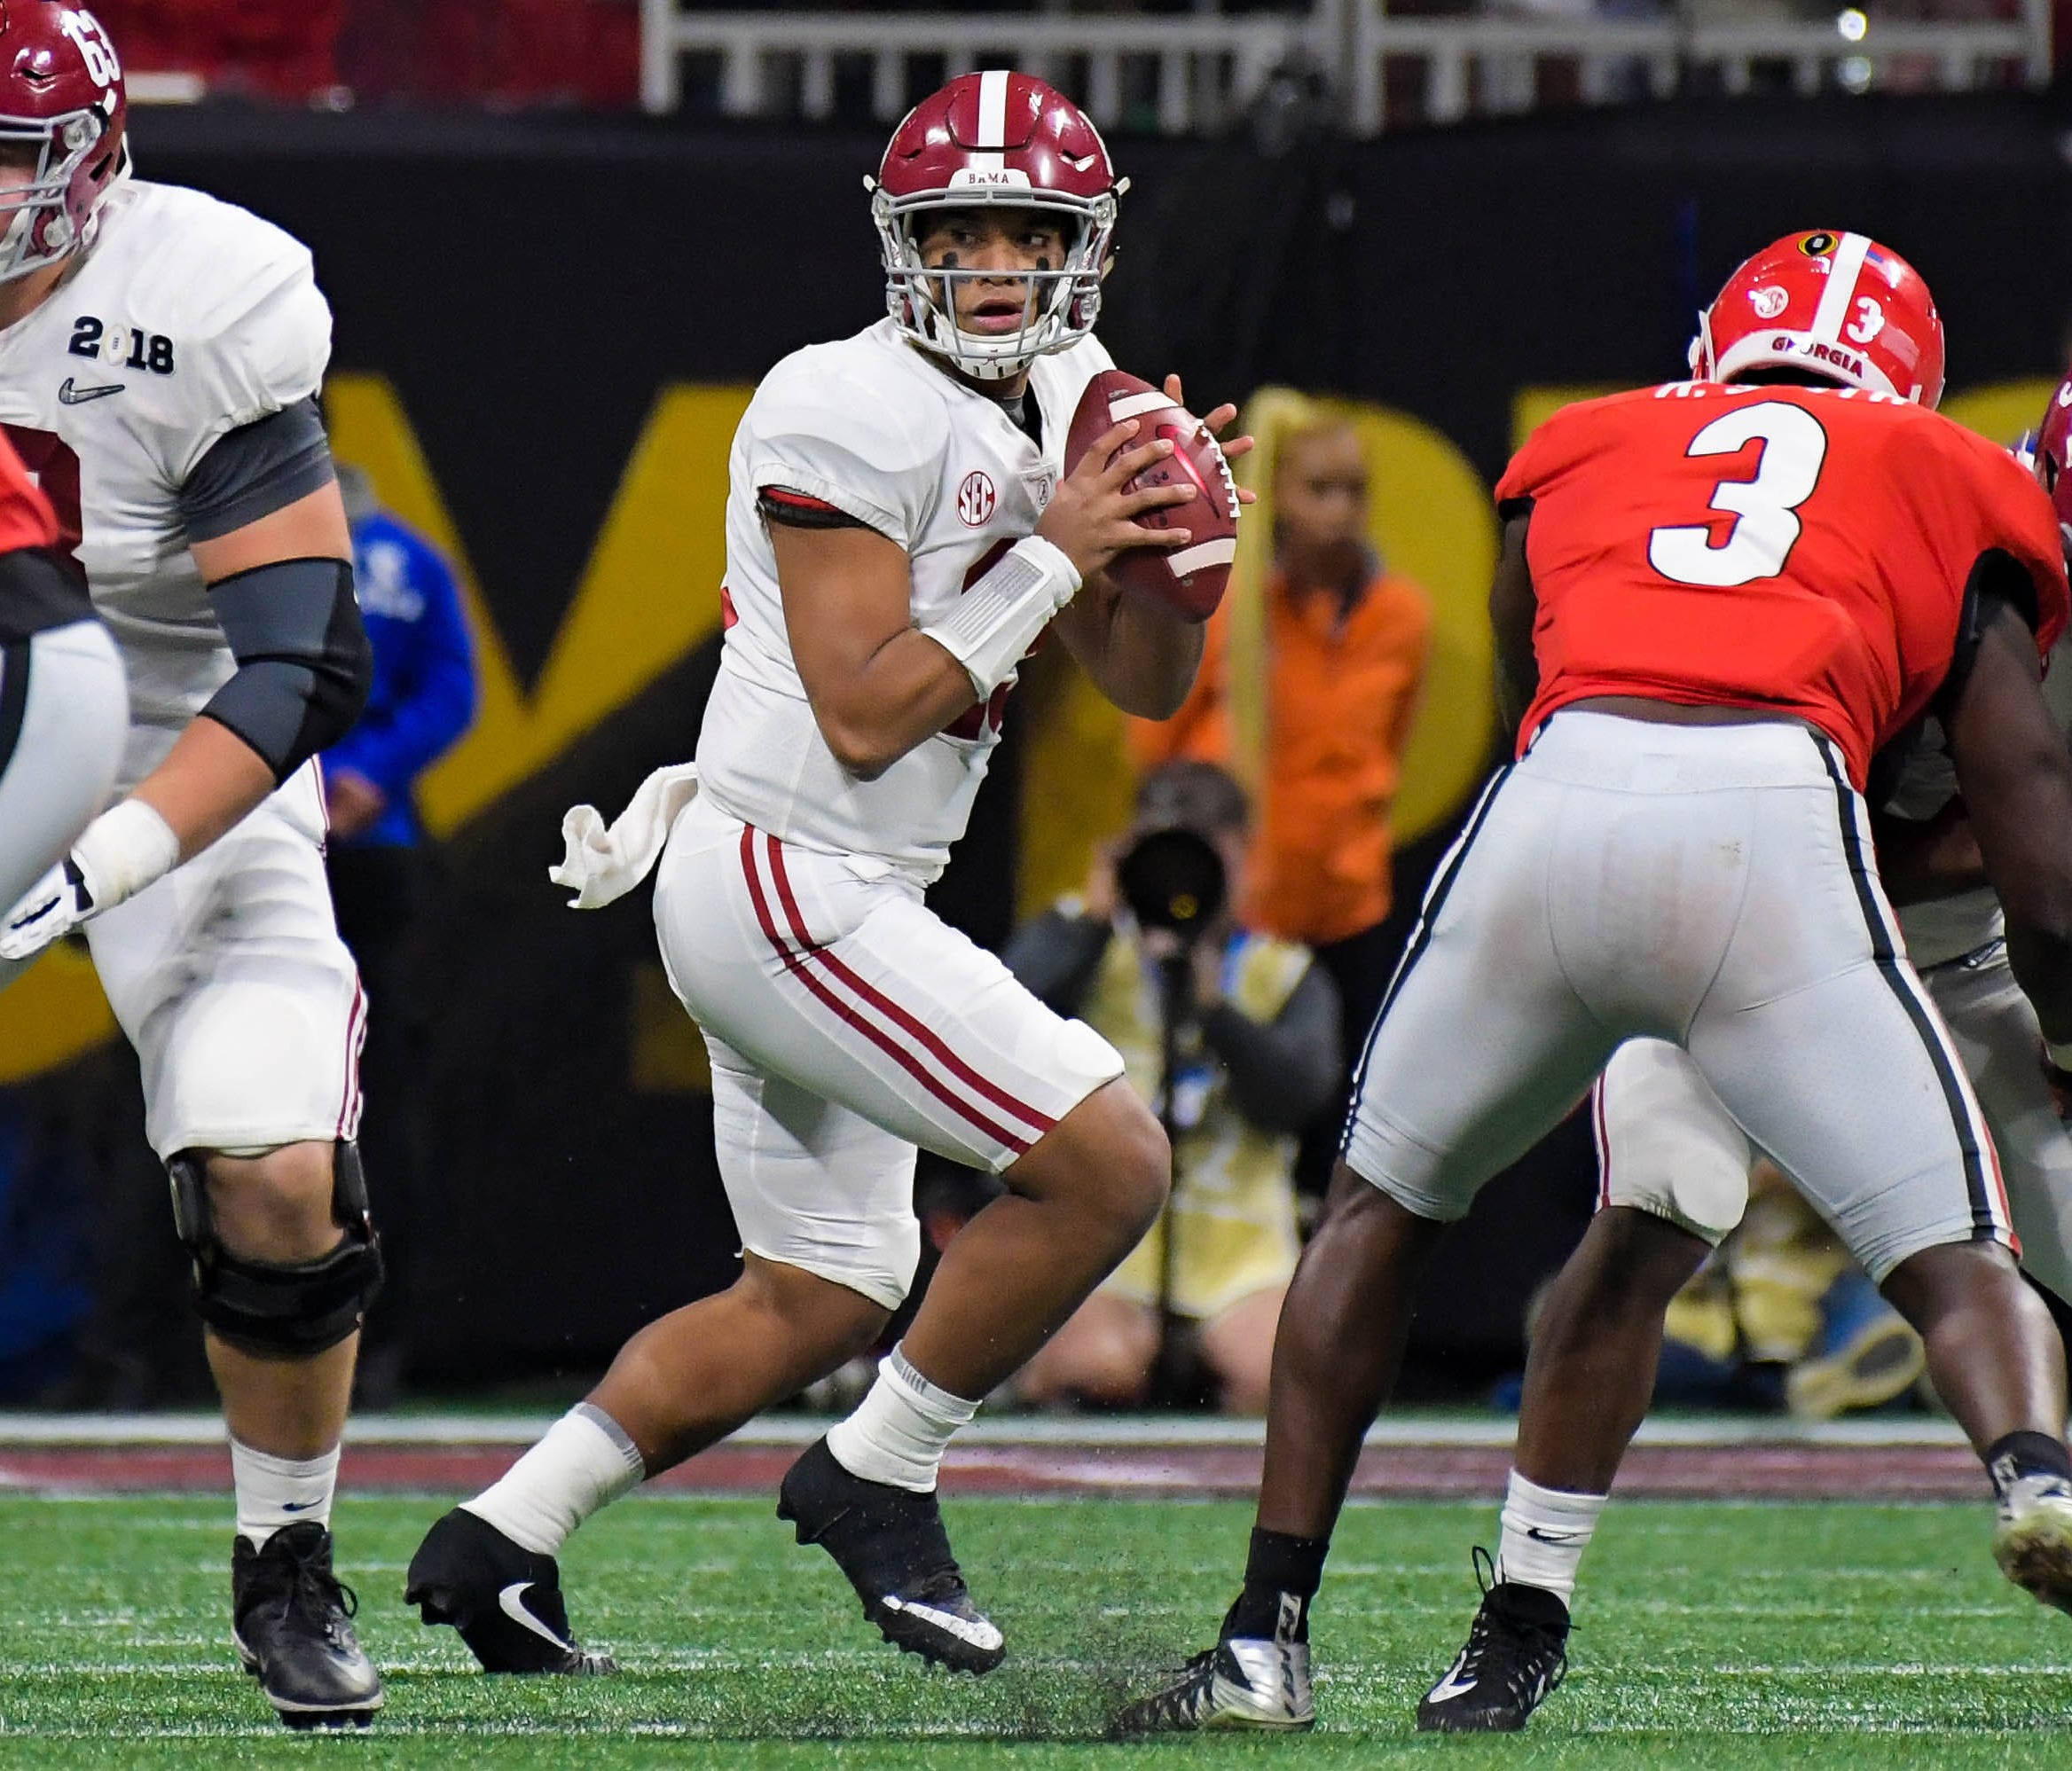 Alabama quarterback Tua Tagovailoa looks to pass against Georgia during the third quarter of the College Football Playoff championship game.